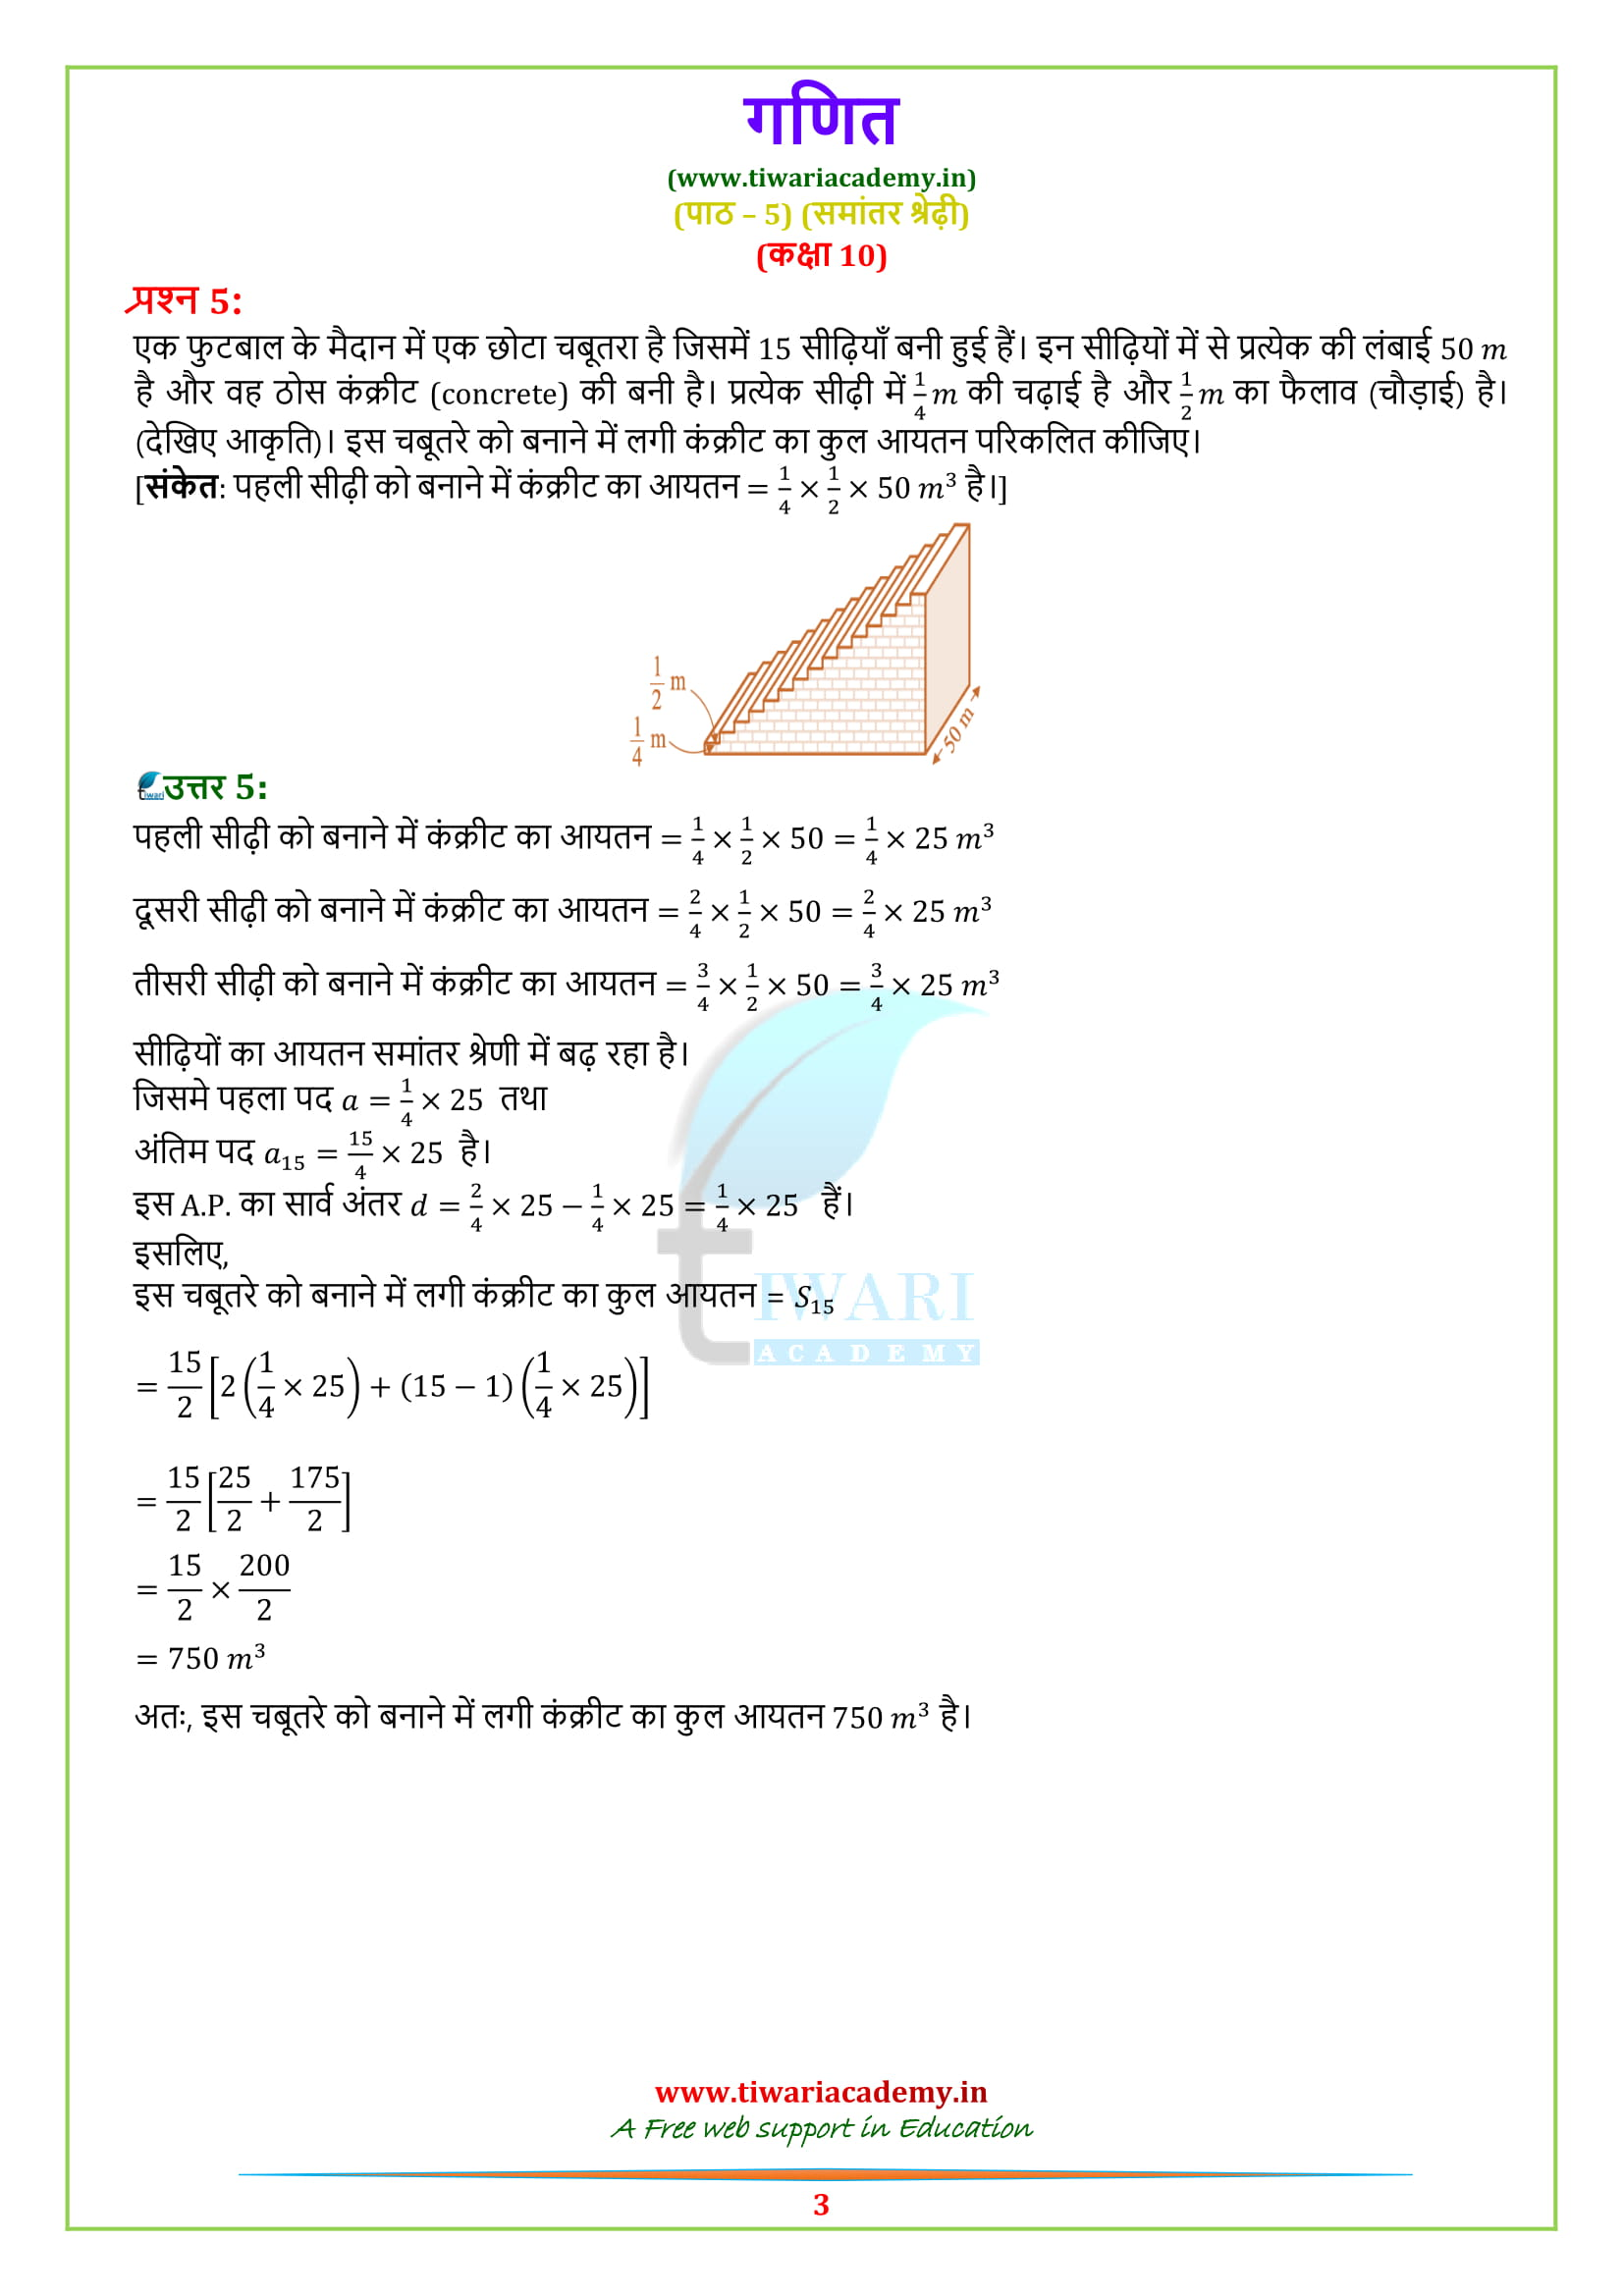 10 Maths exercise 5.4 solutions for 2018-19 in PDF